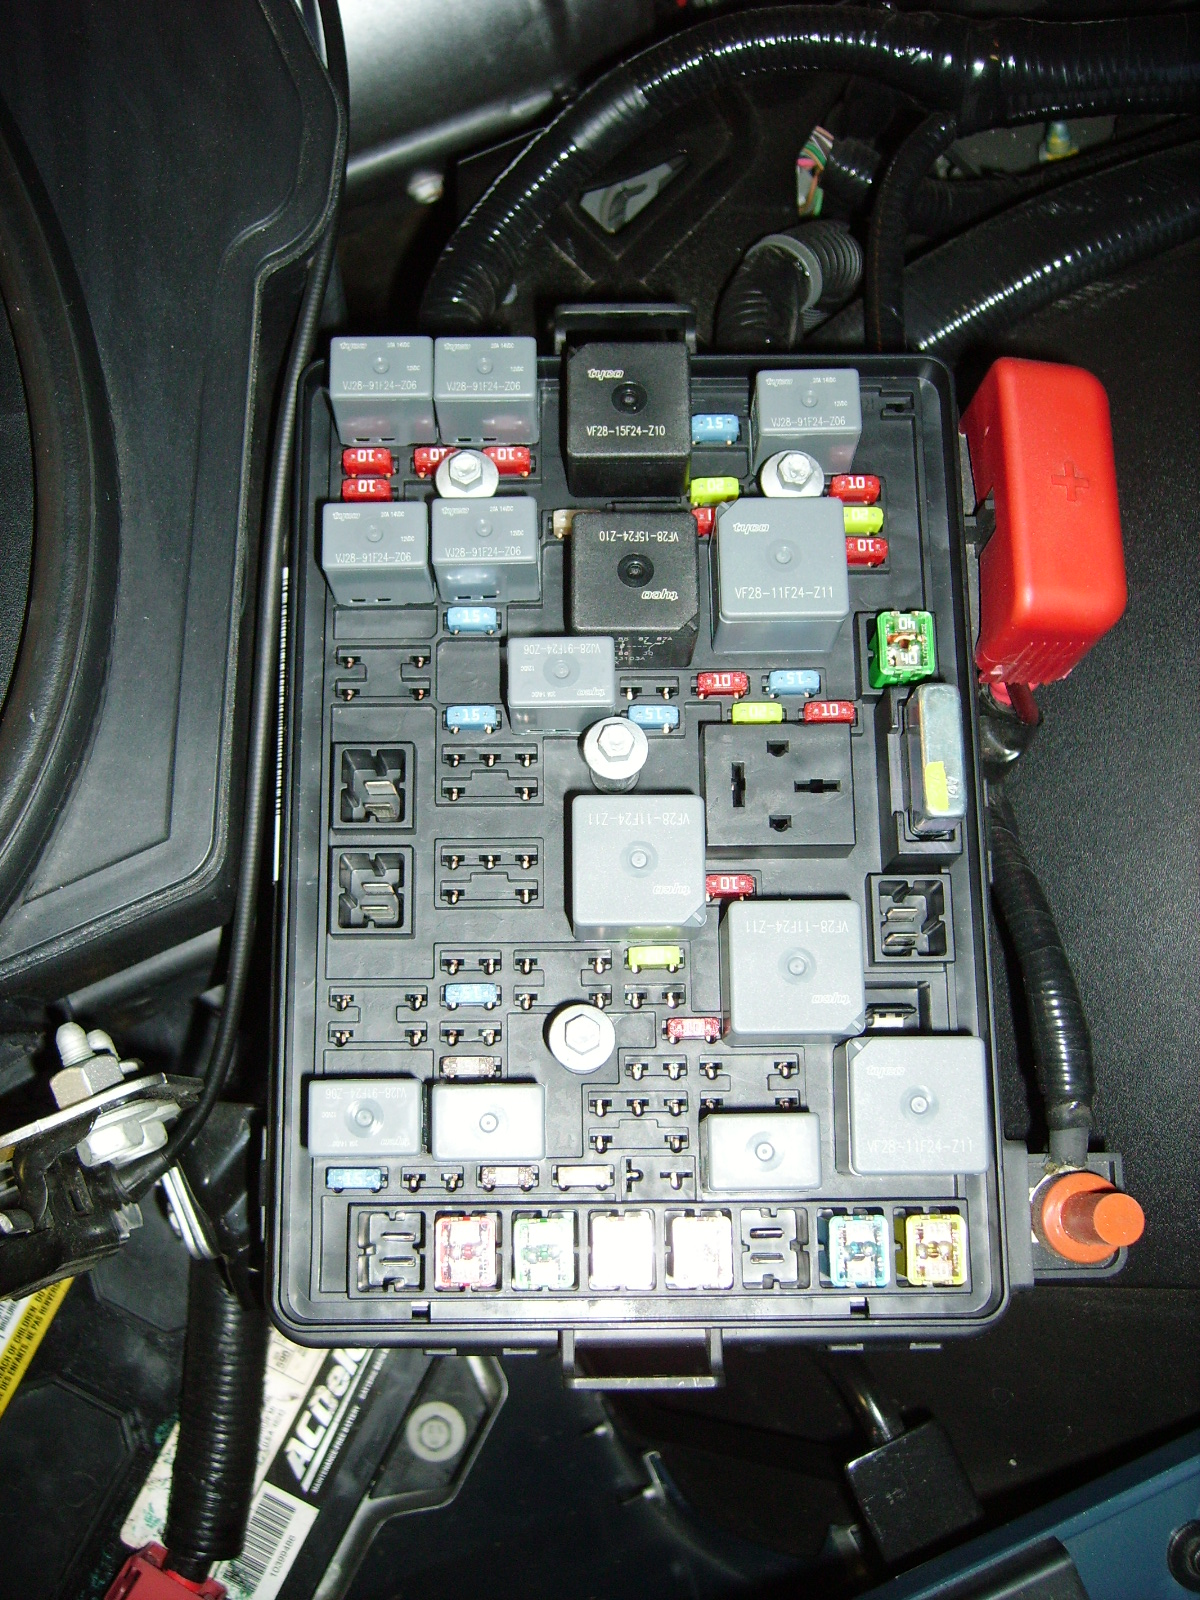 Fuse Box Location For 94 Saturn Wiring Library 97 Radiator Fan Is Dead Pontiac Solstice Forum Glove